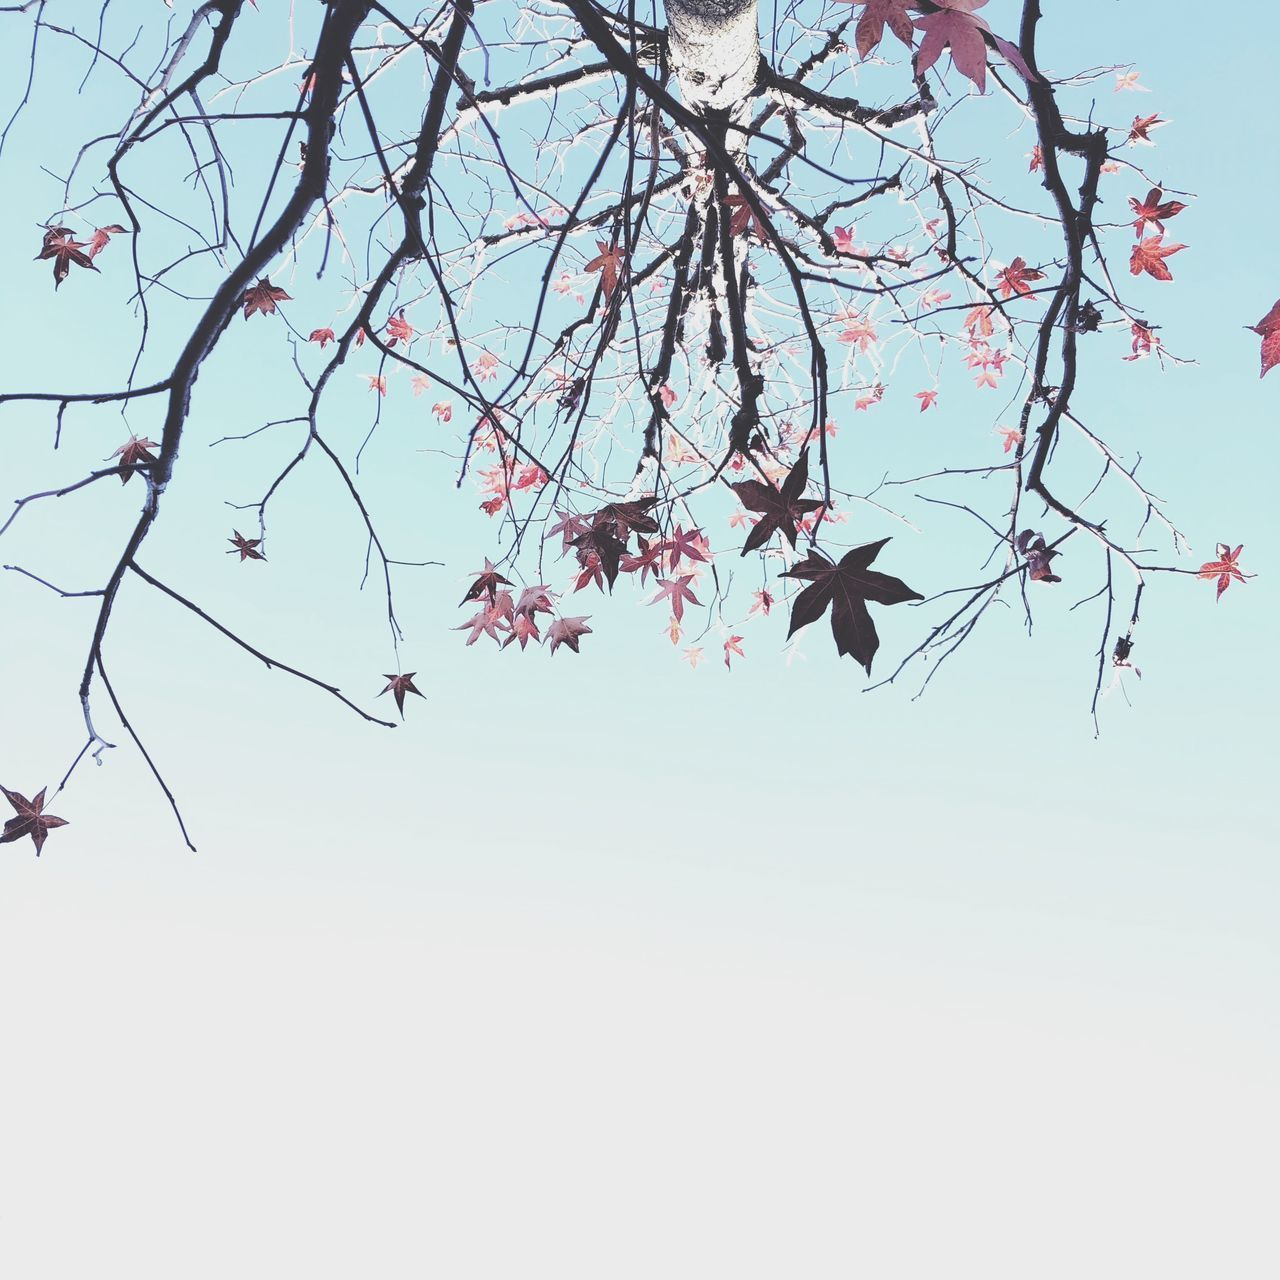 plant, tree, branch, sky, beauty in nature, growth, low angle view, flower, flowering plant, nature, clear sky, fragility, pink color, no people, vulnerability, freshness, day, springtime, tranquility, blossom, outdoors, cherry blossom, cherry tree